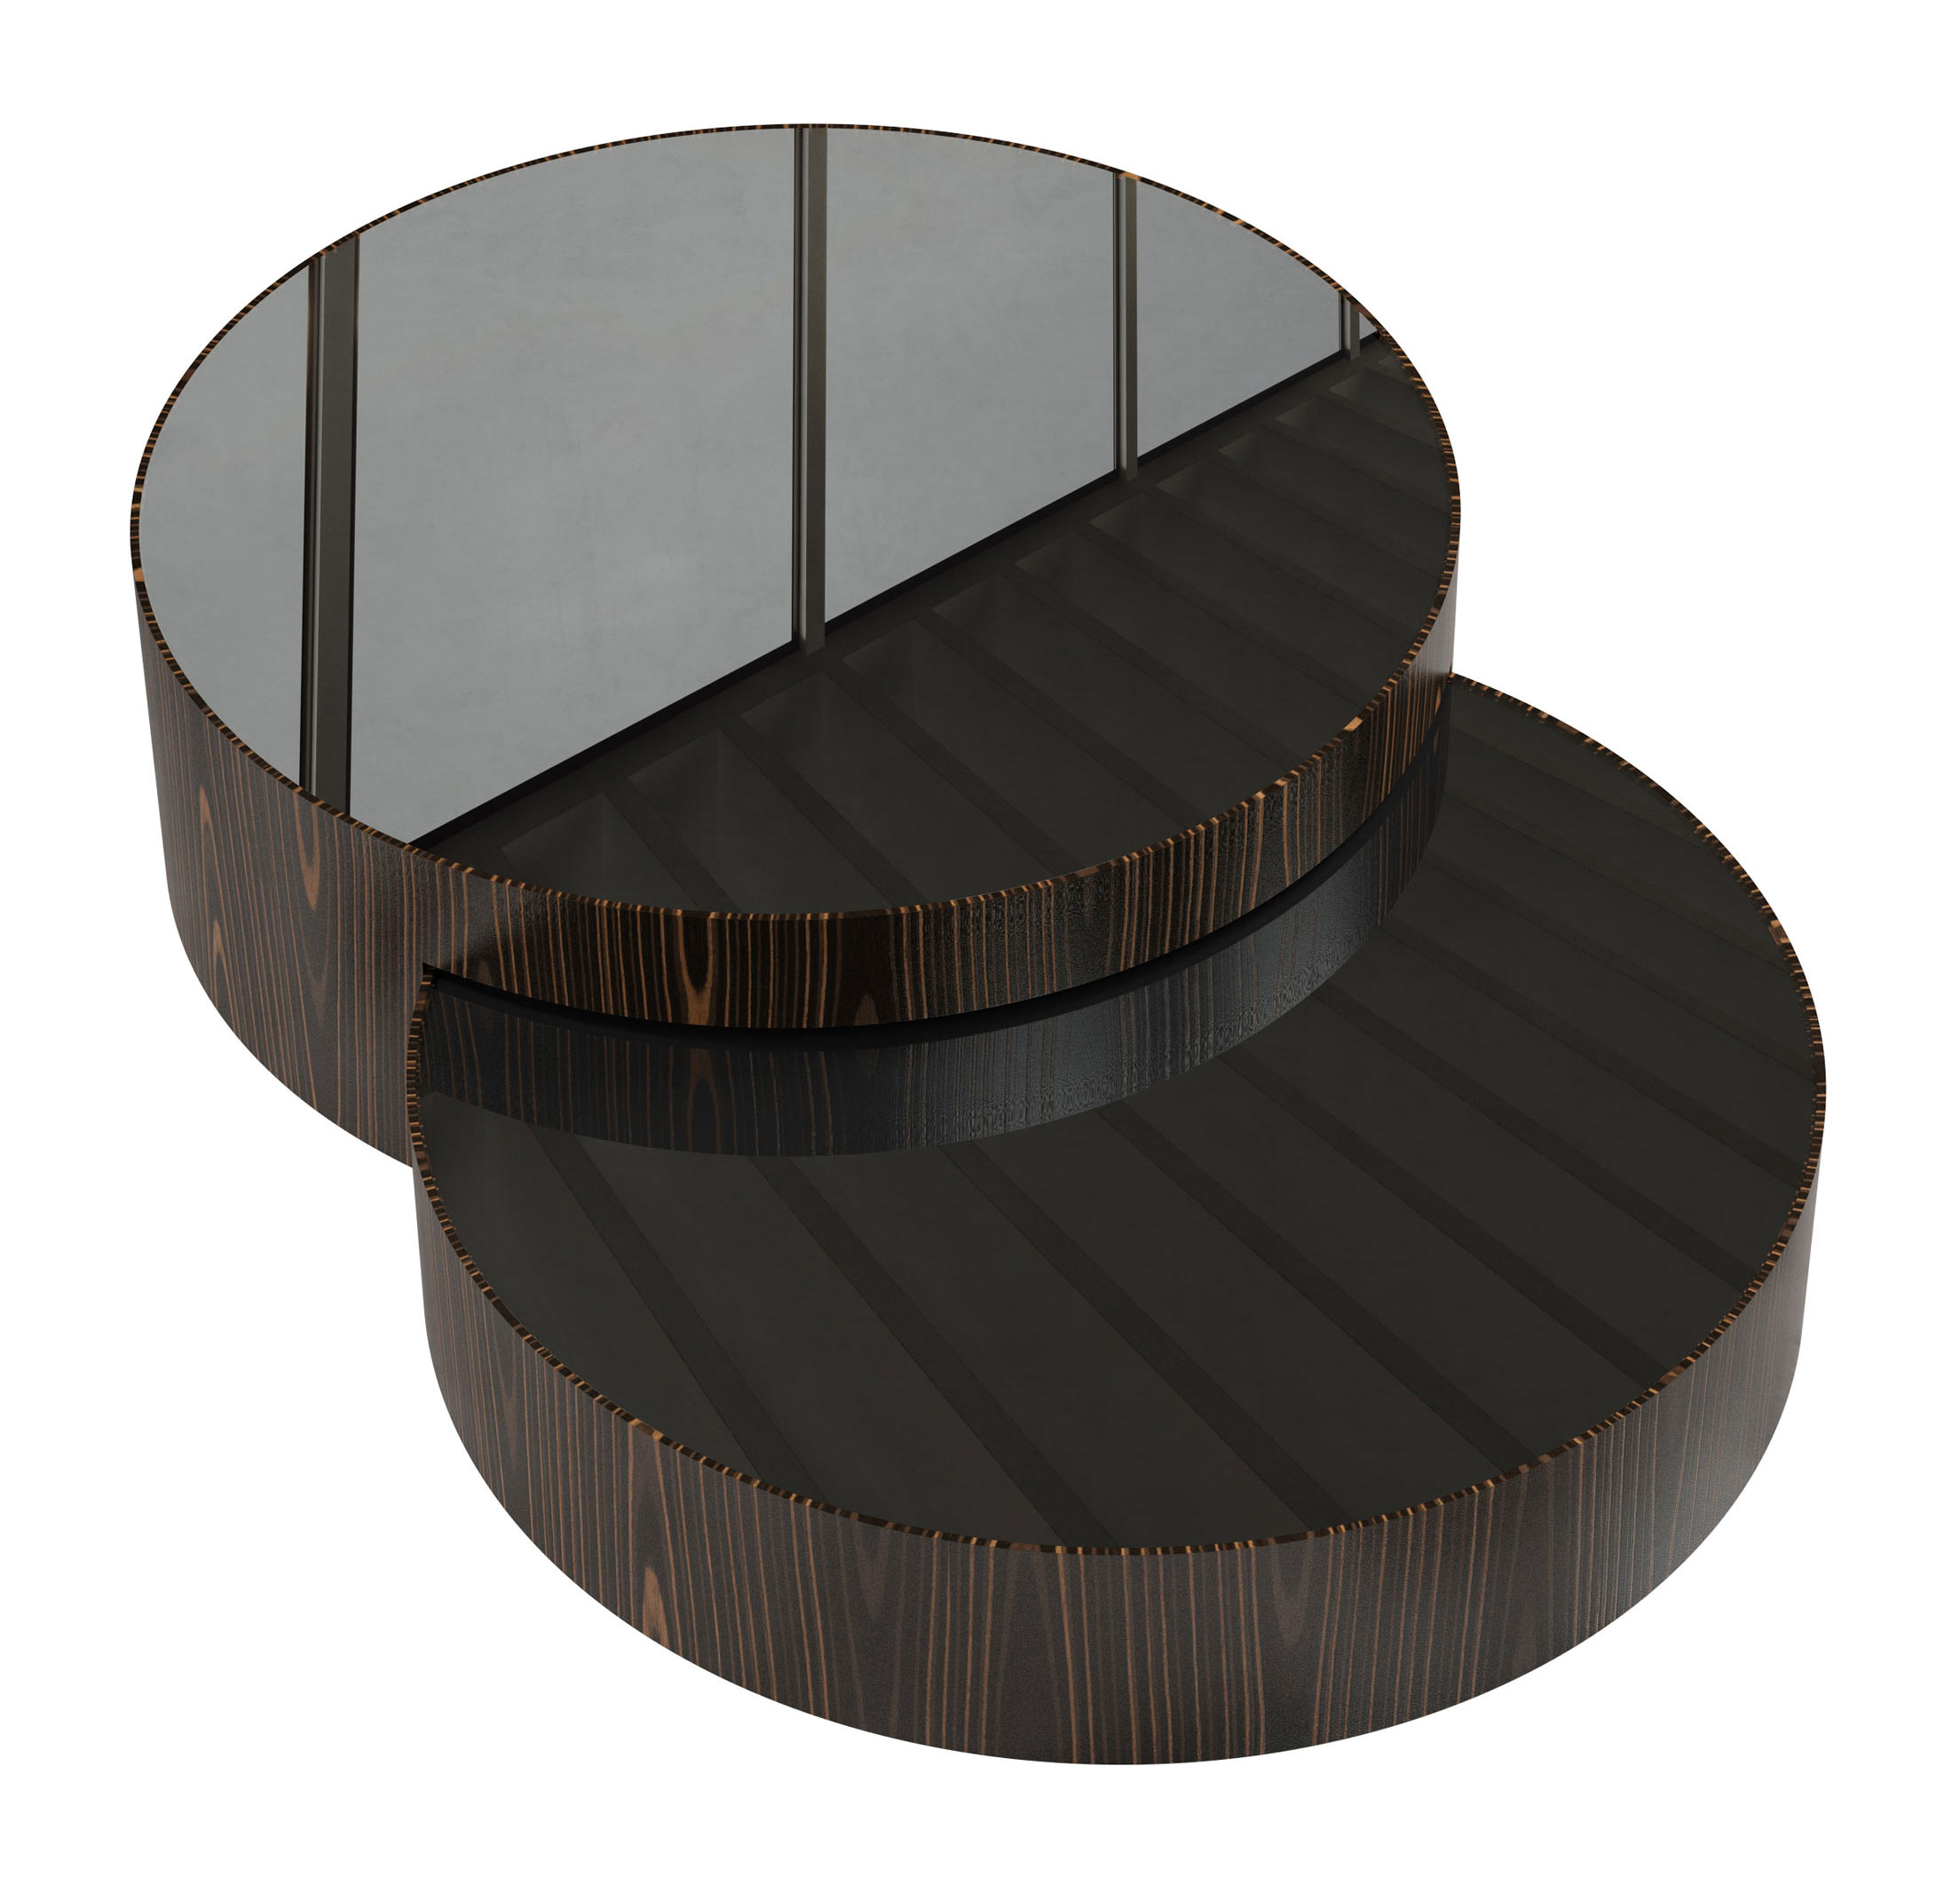 Berkeley Nesting Coffee Table Black Glass on Cathedral Ebony by